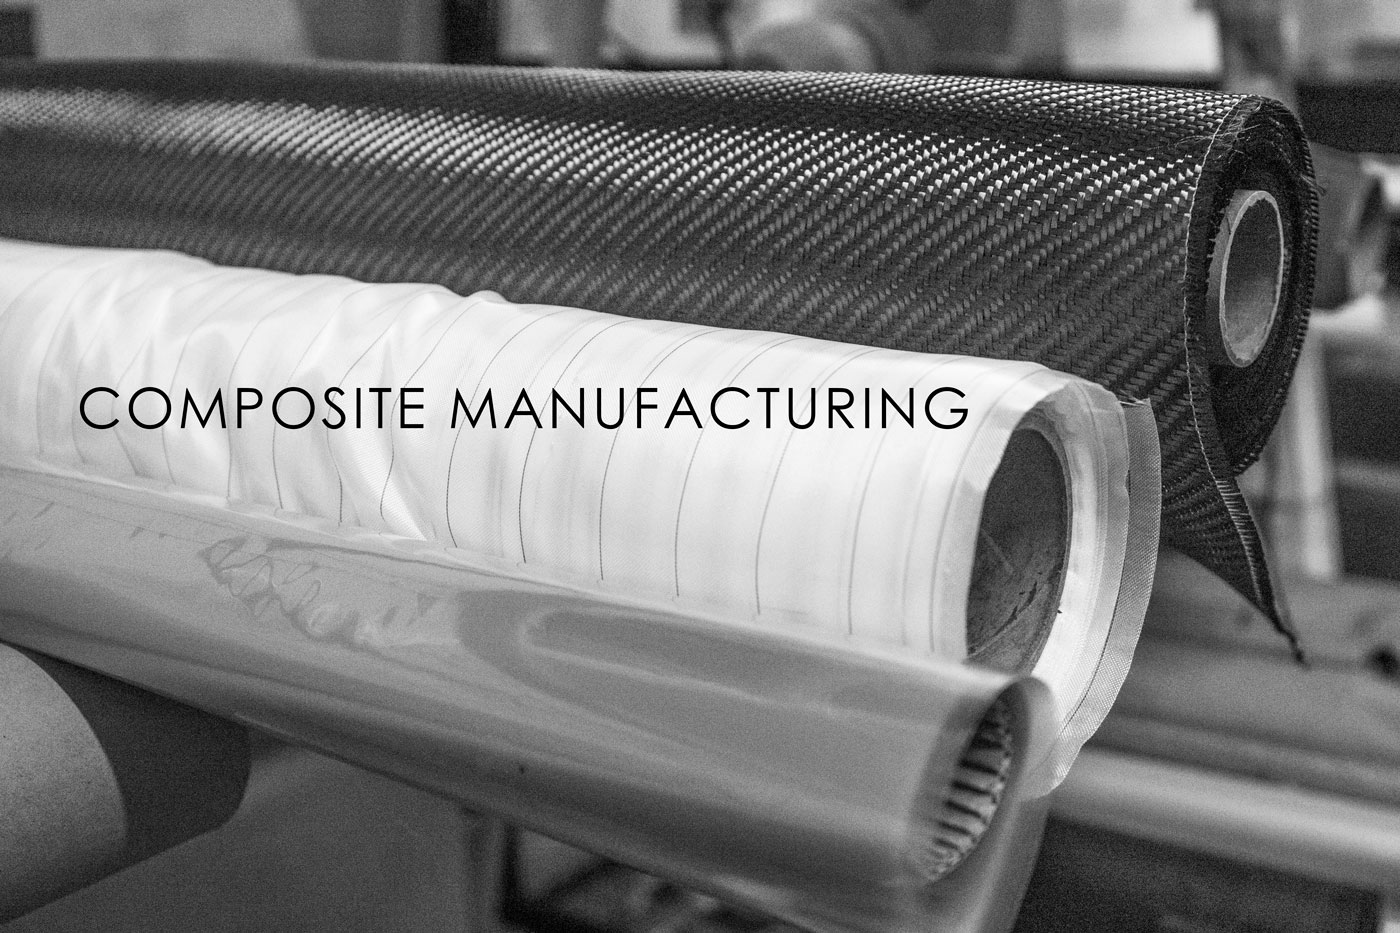 Composite Manufacturing - Starting with rolls of dry carbon fiber we can fabricate just about any product imaginable in-house.  We have made products as large as the chassis for a car and as small as a wallet.